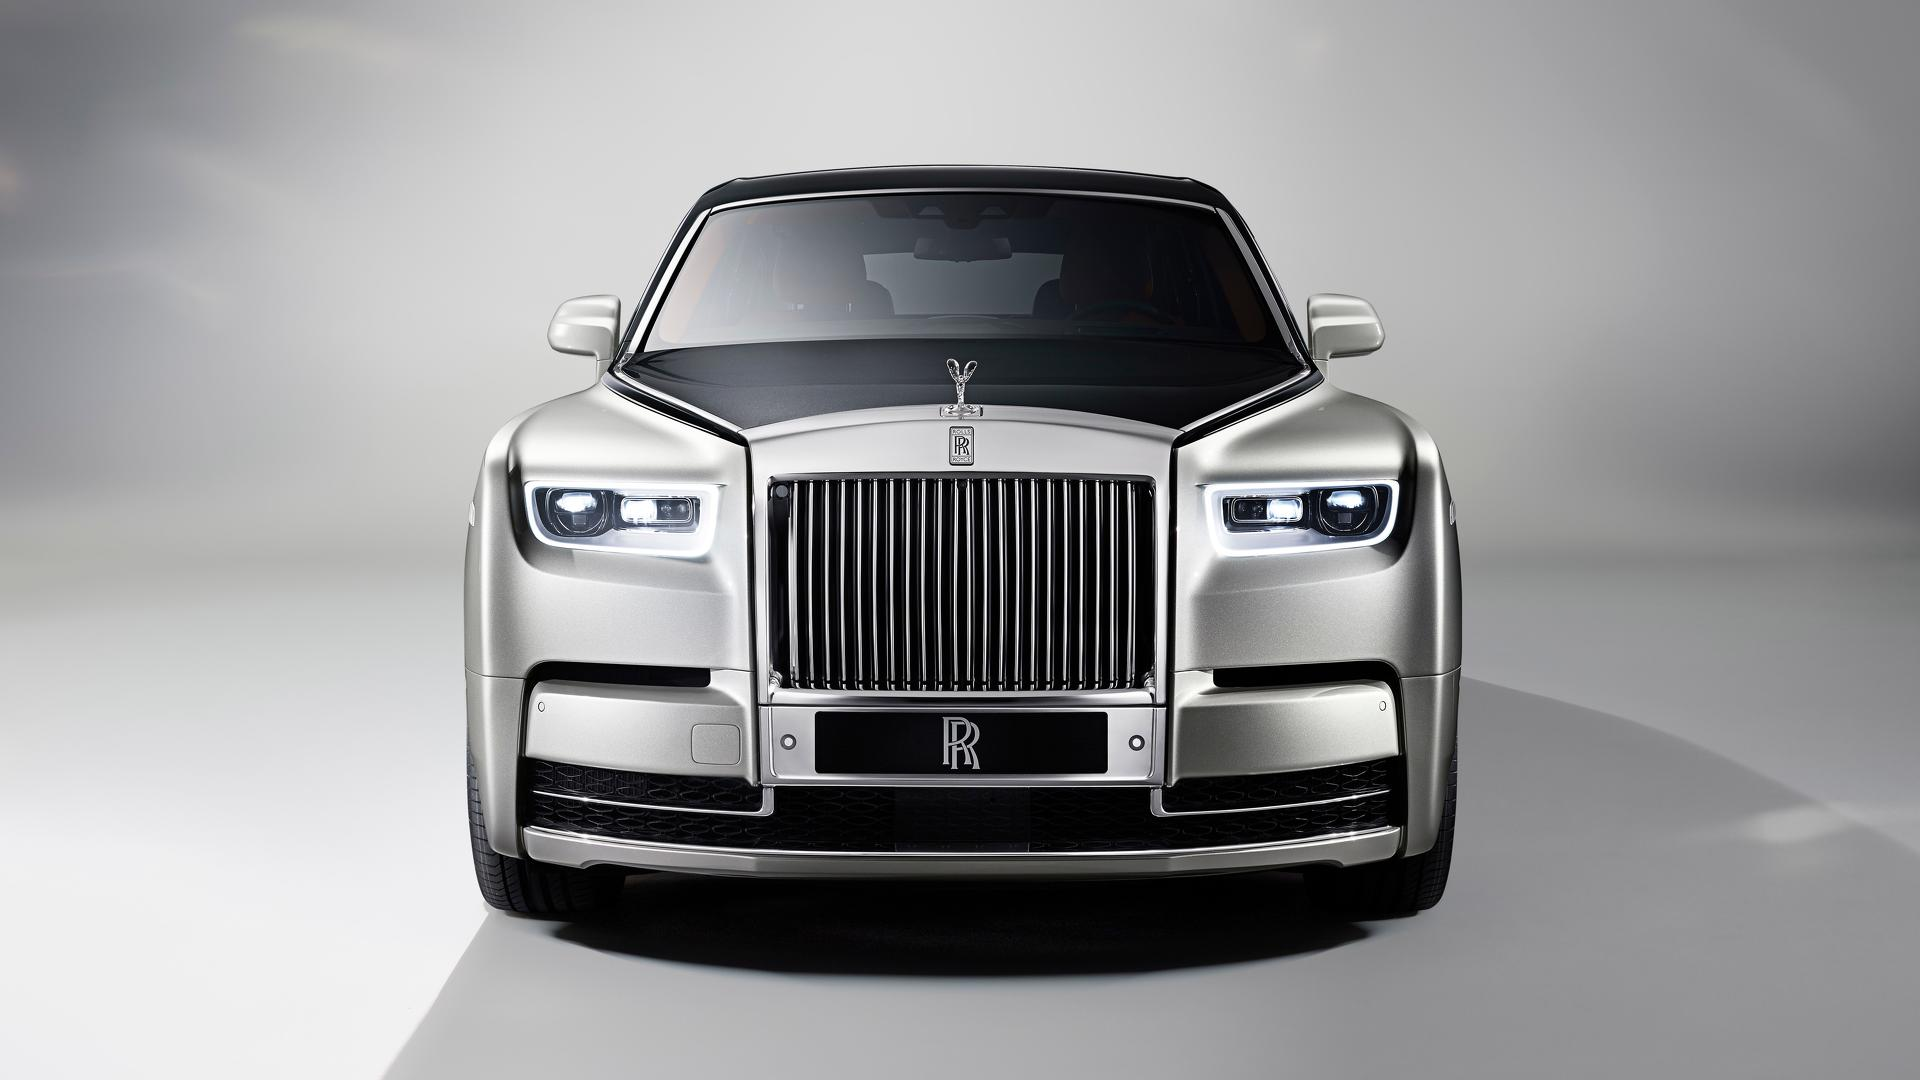 The Future Of Rolls Royce Suv Full Ev And Phantom At The Top